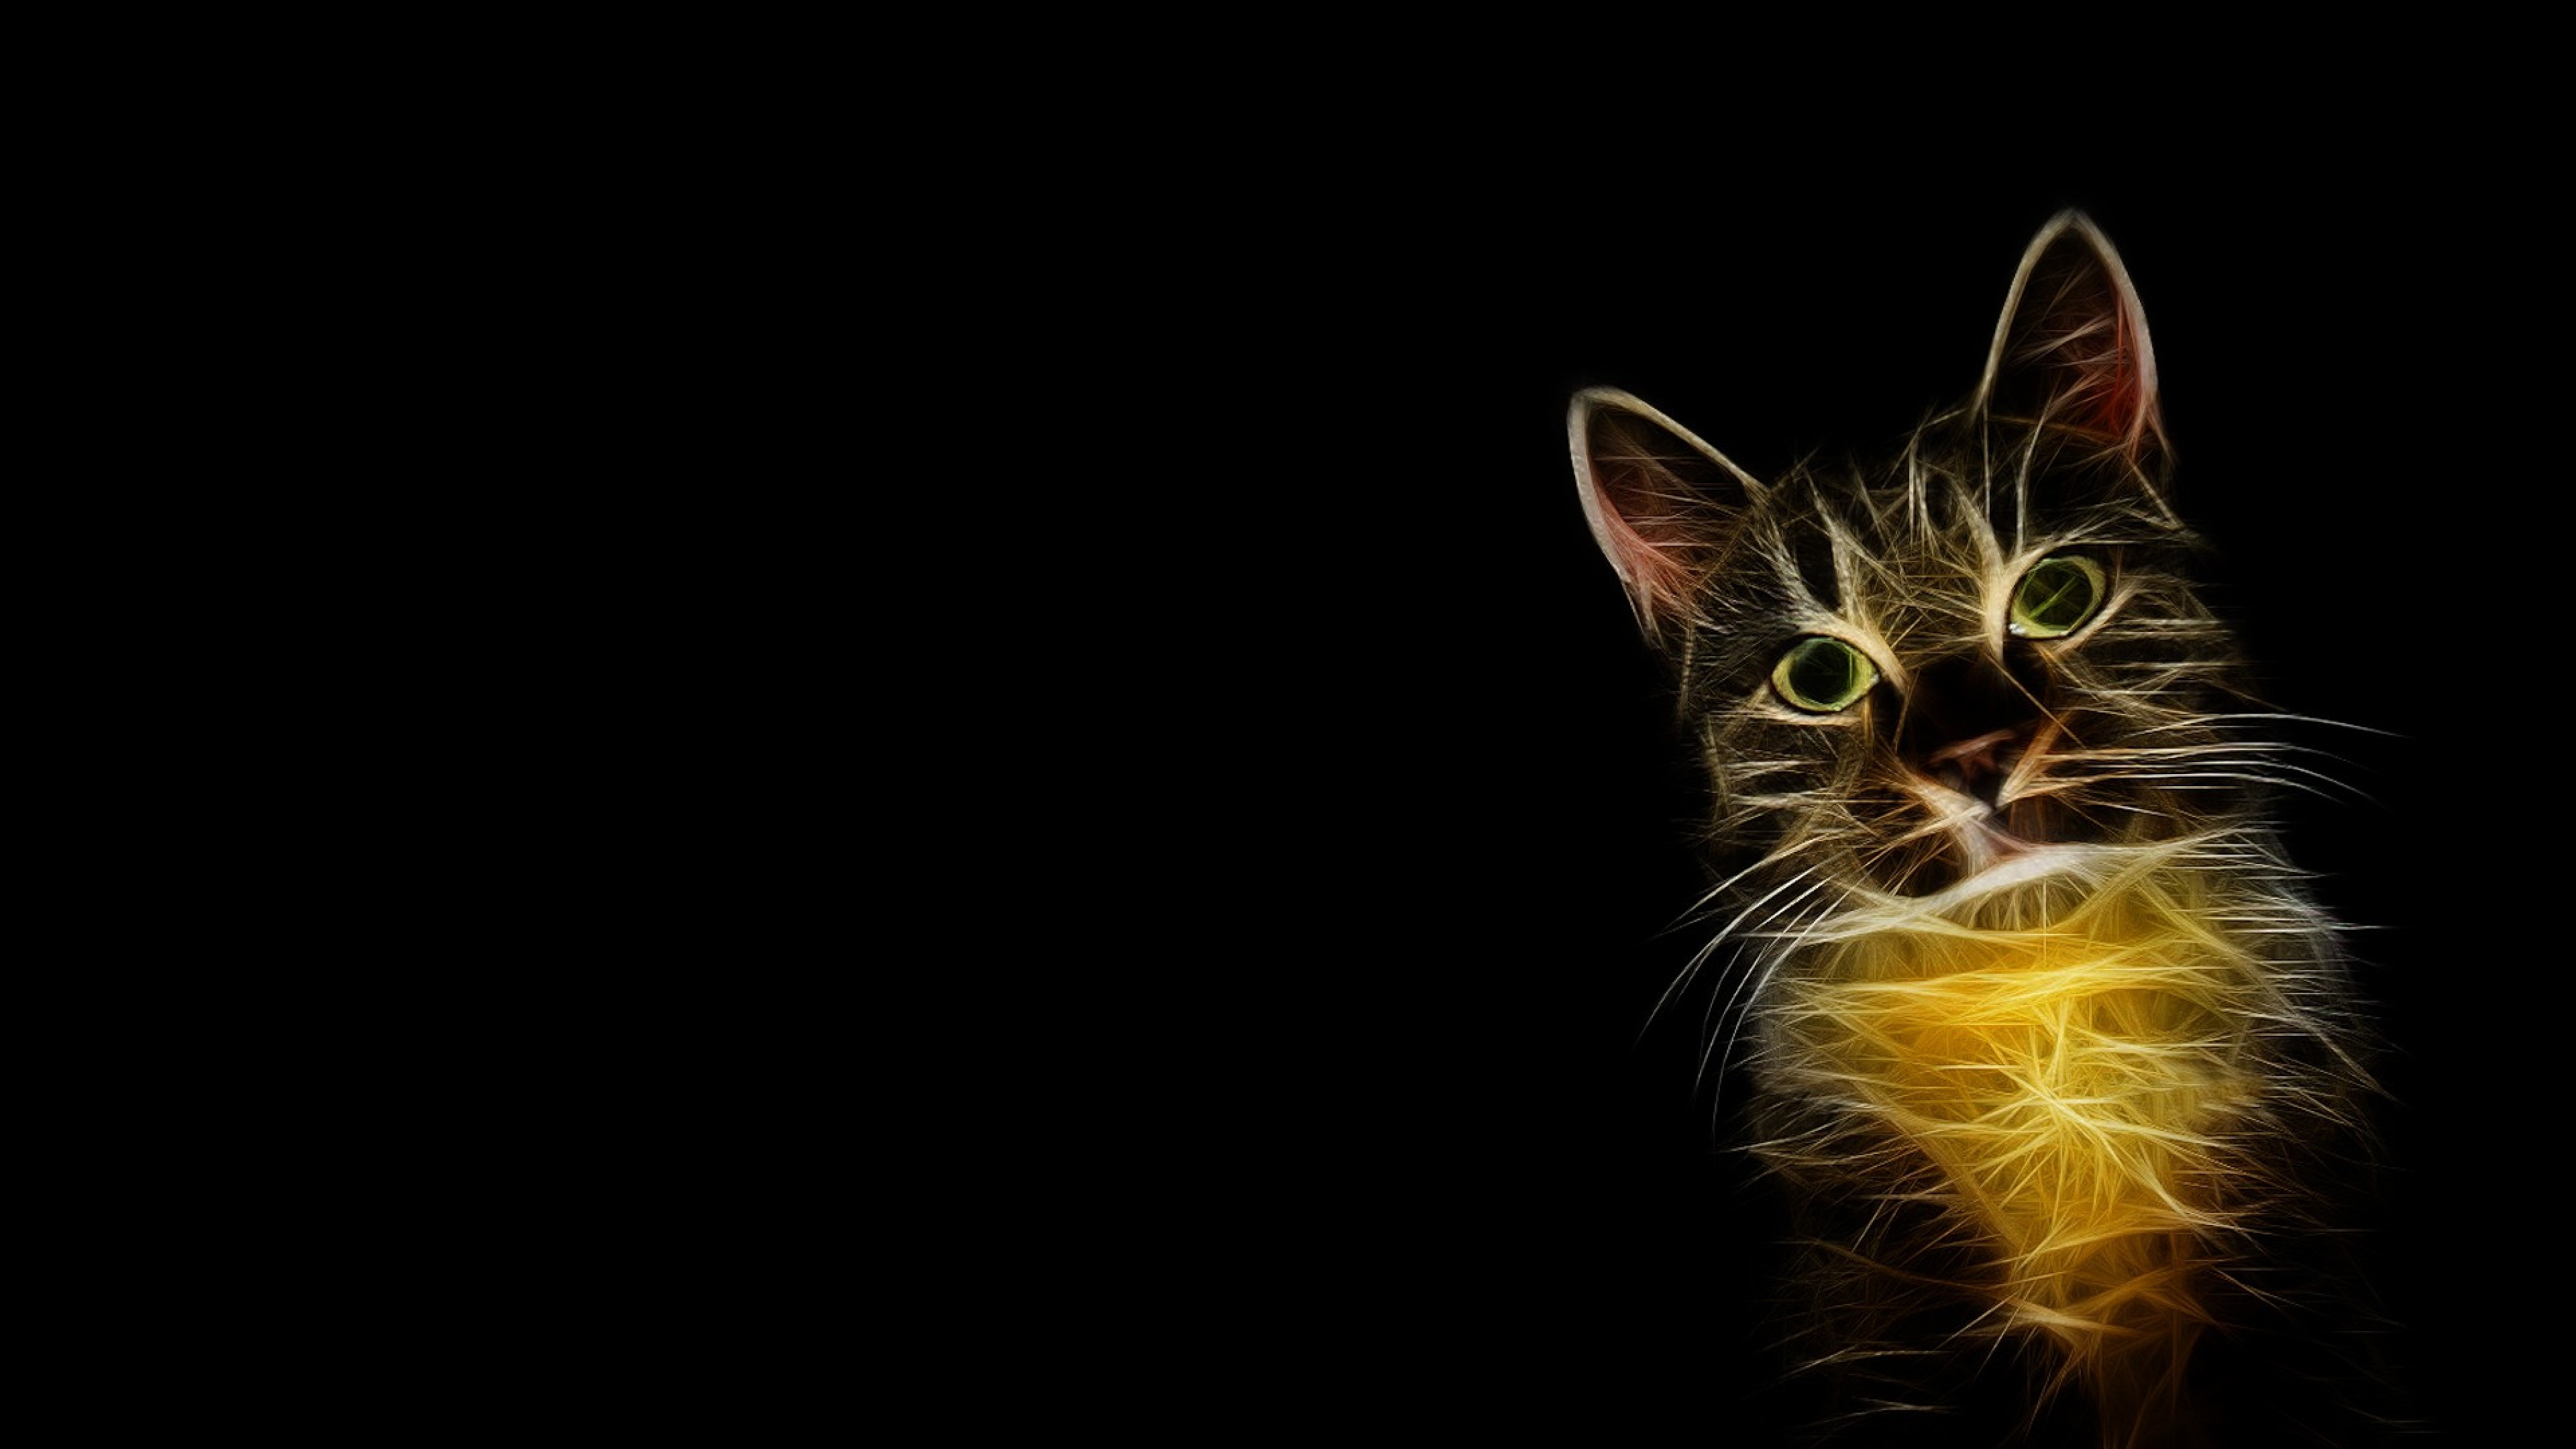 4k cat wallpapers high quality download free